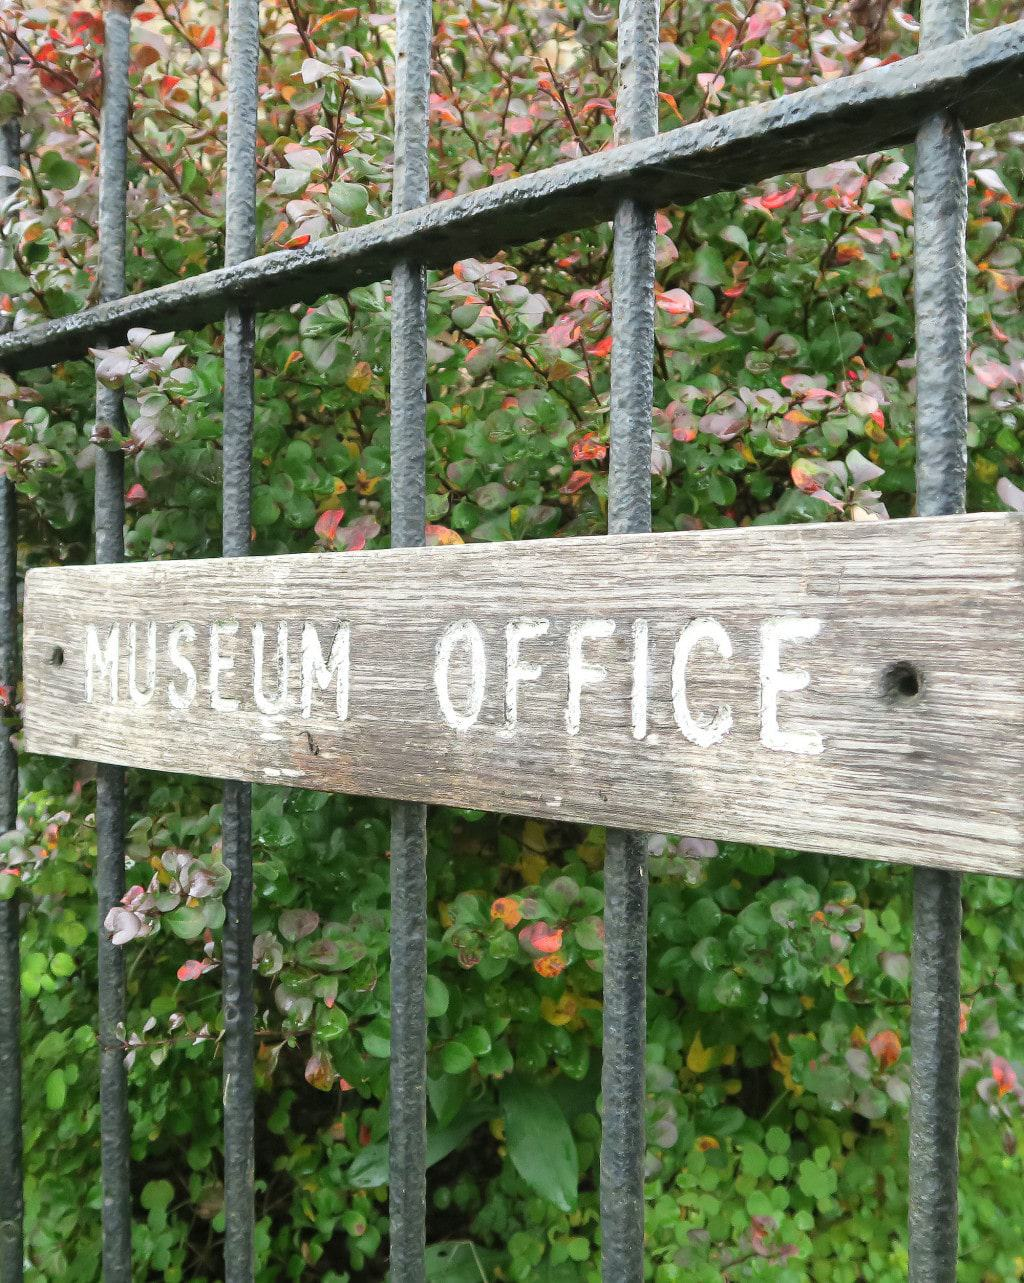 The Chiltern Open Air Museum office sign